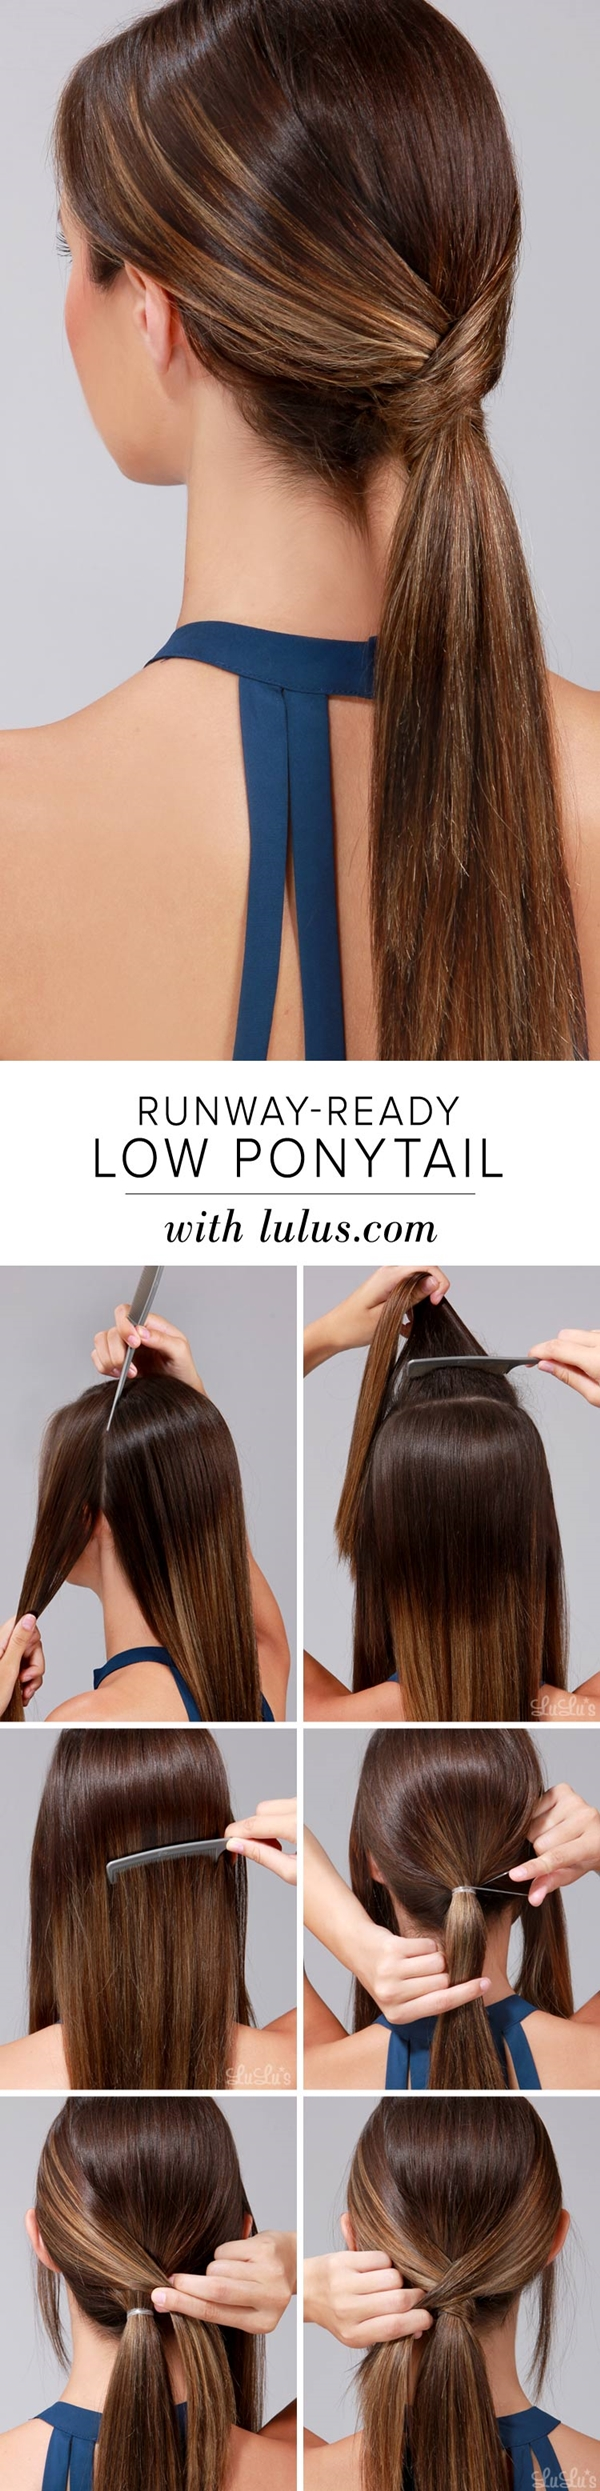 40 Quick and Easy Back to School Hairstyle for Long Hair - Fashiondioxide